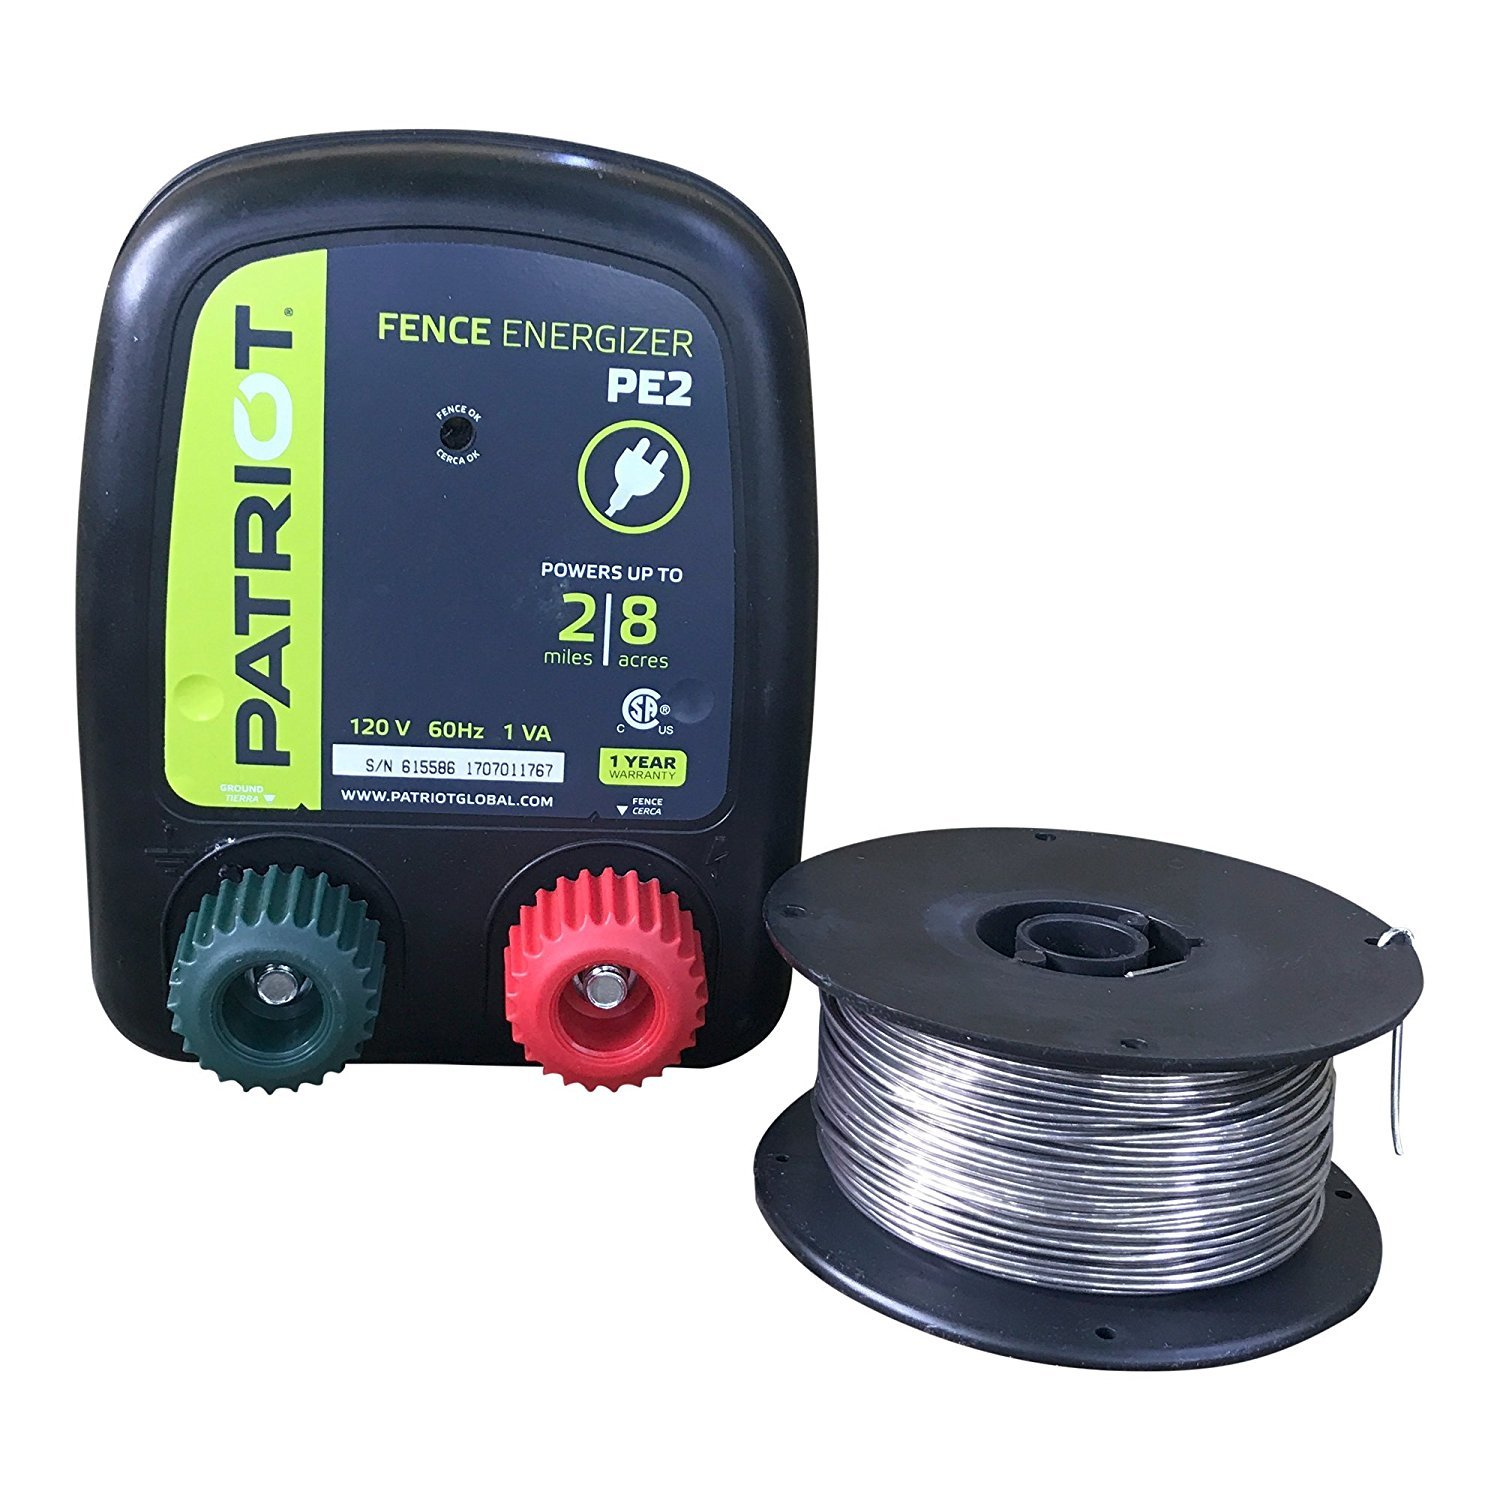 Patriot PE2 Electric Fence Energizer Plus Fi-Shock 250-Feet 17 Gauge Spool Aluminum Wire for Containing Pets and Keeping Out Small Nuisance Animals